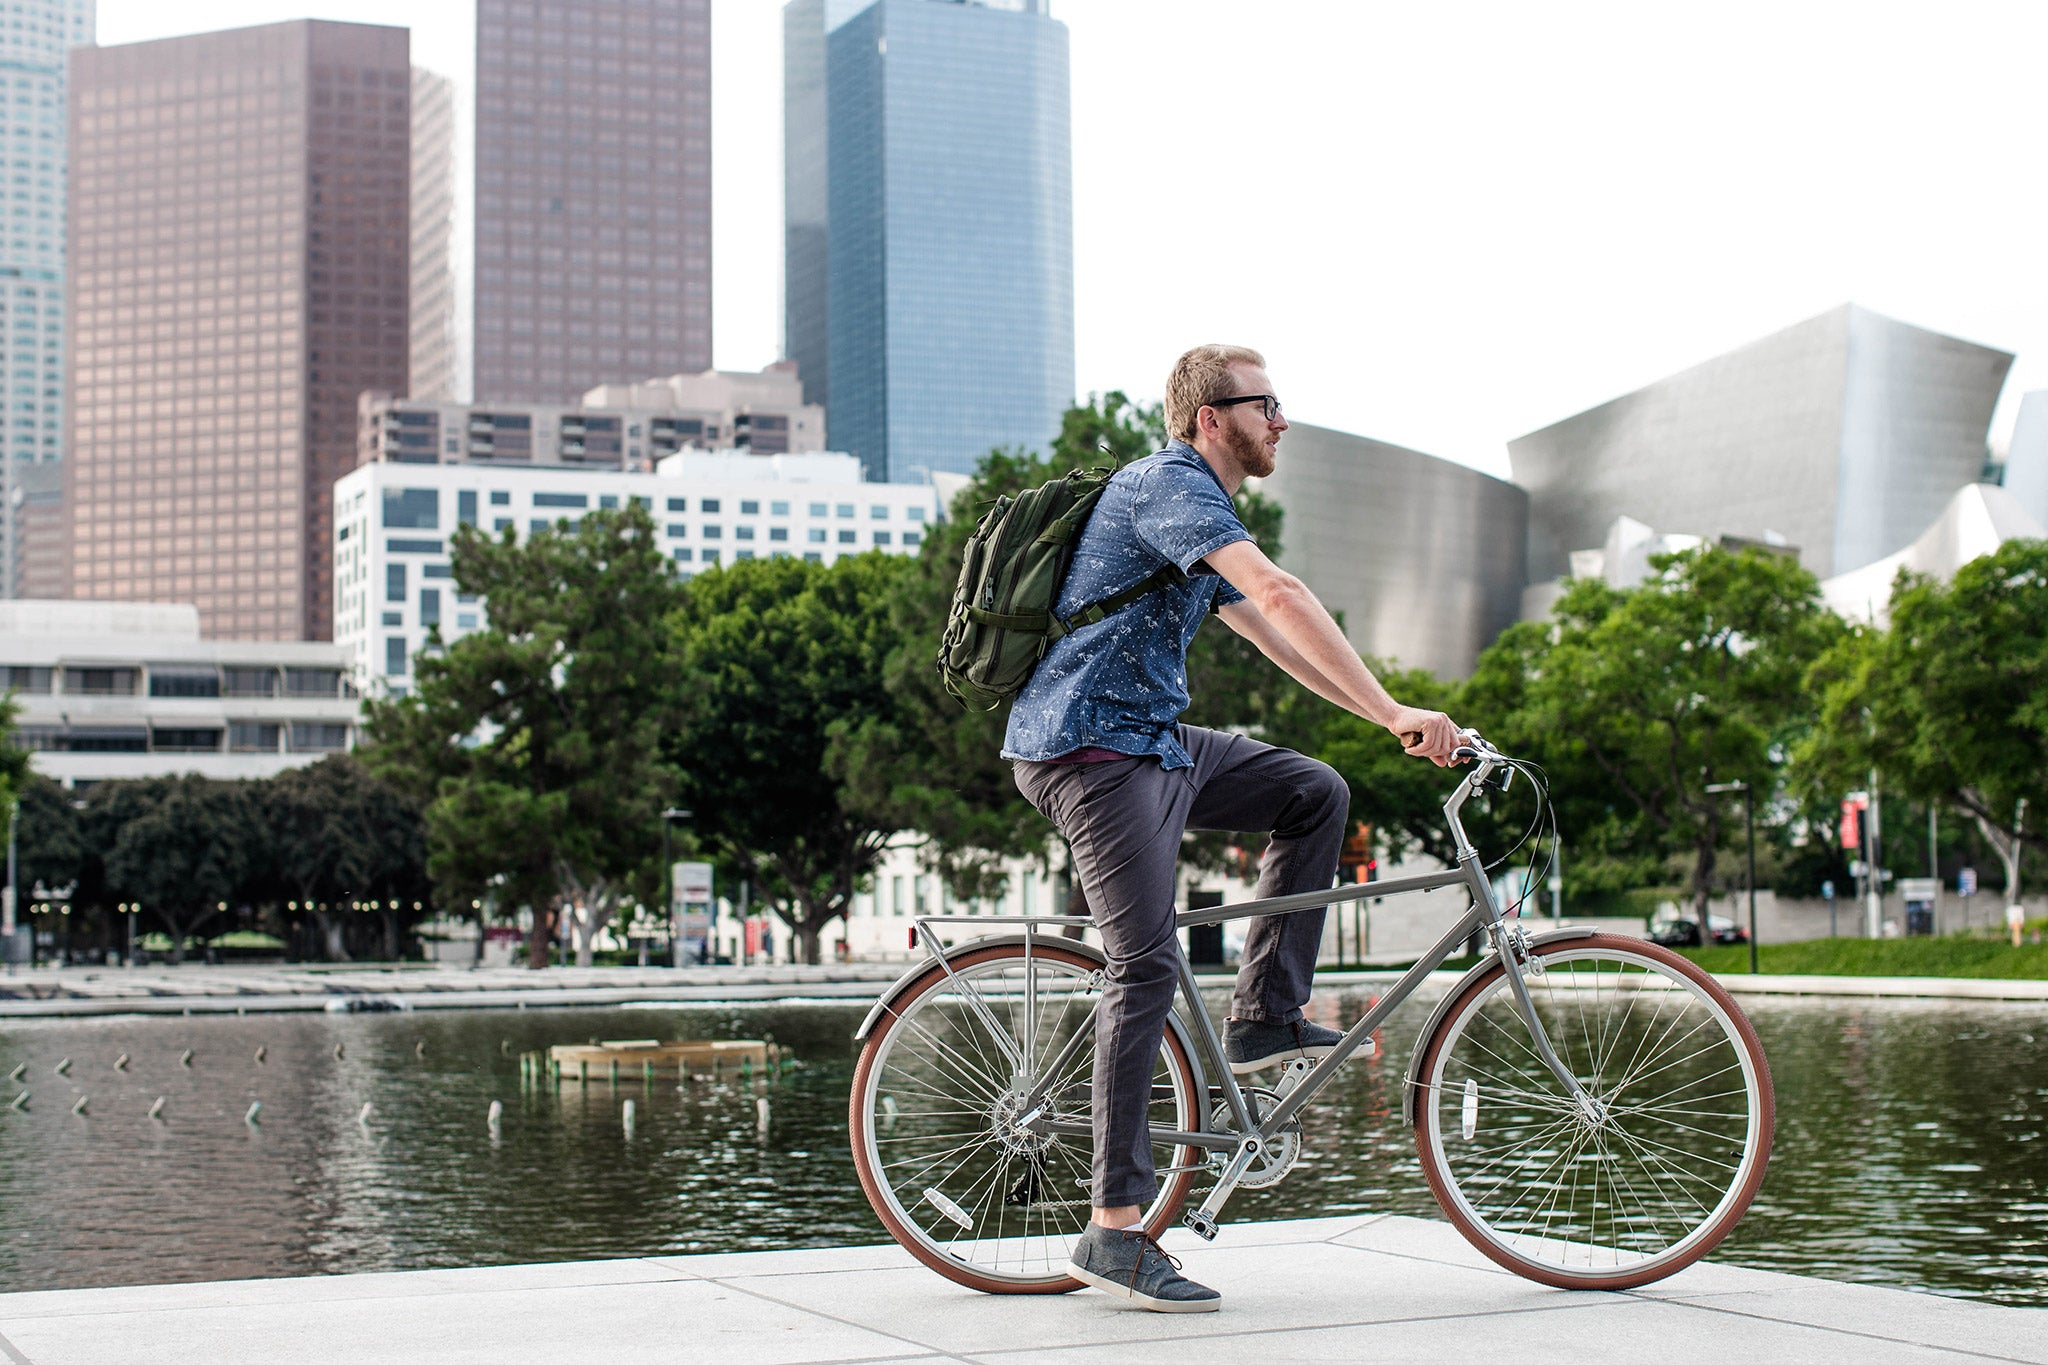 Urban Bike Rider Spotlight: Exciting Growth and New Challenges